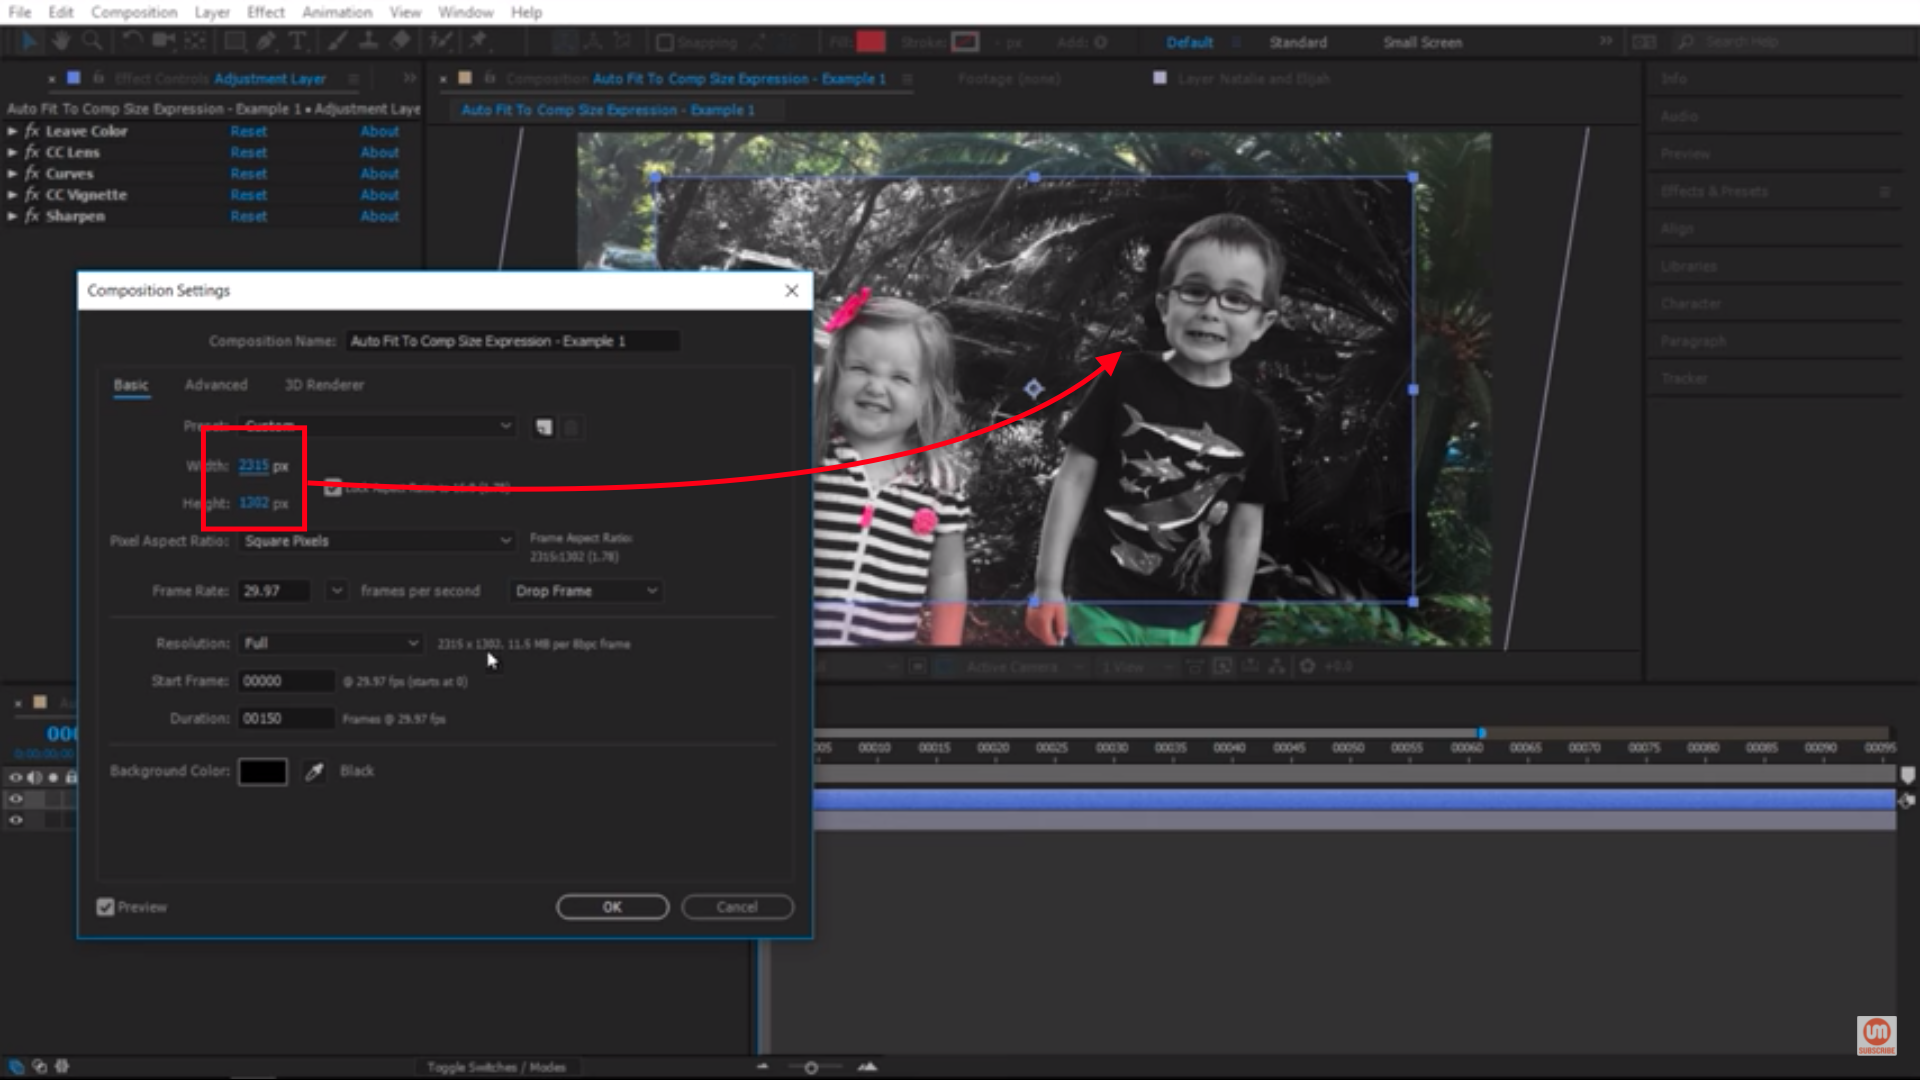 Changing the composition settings in After Effects